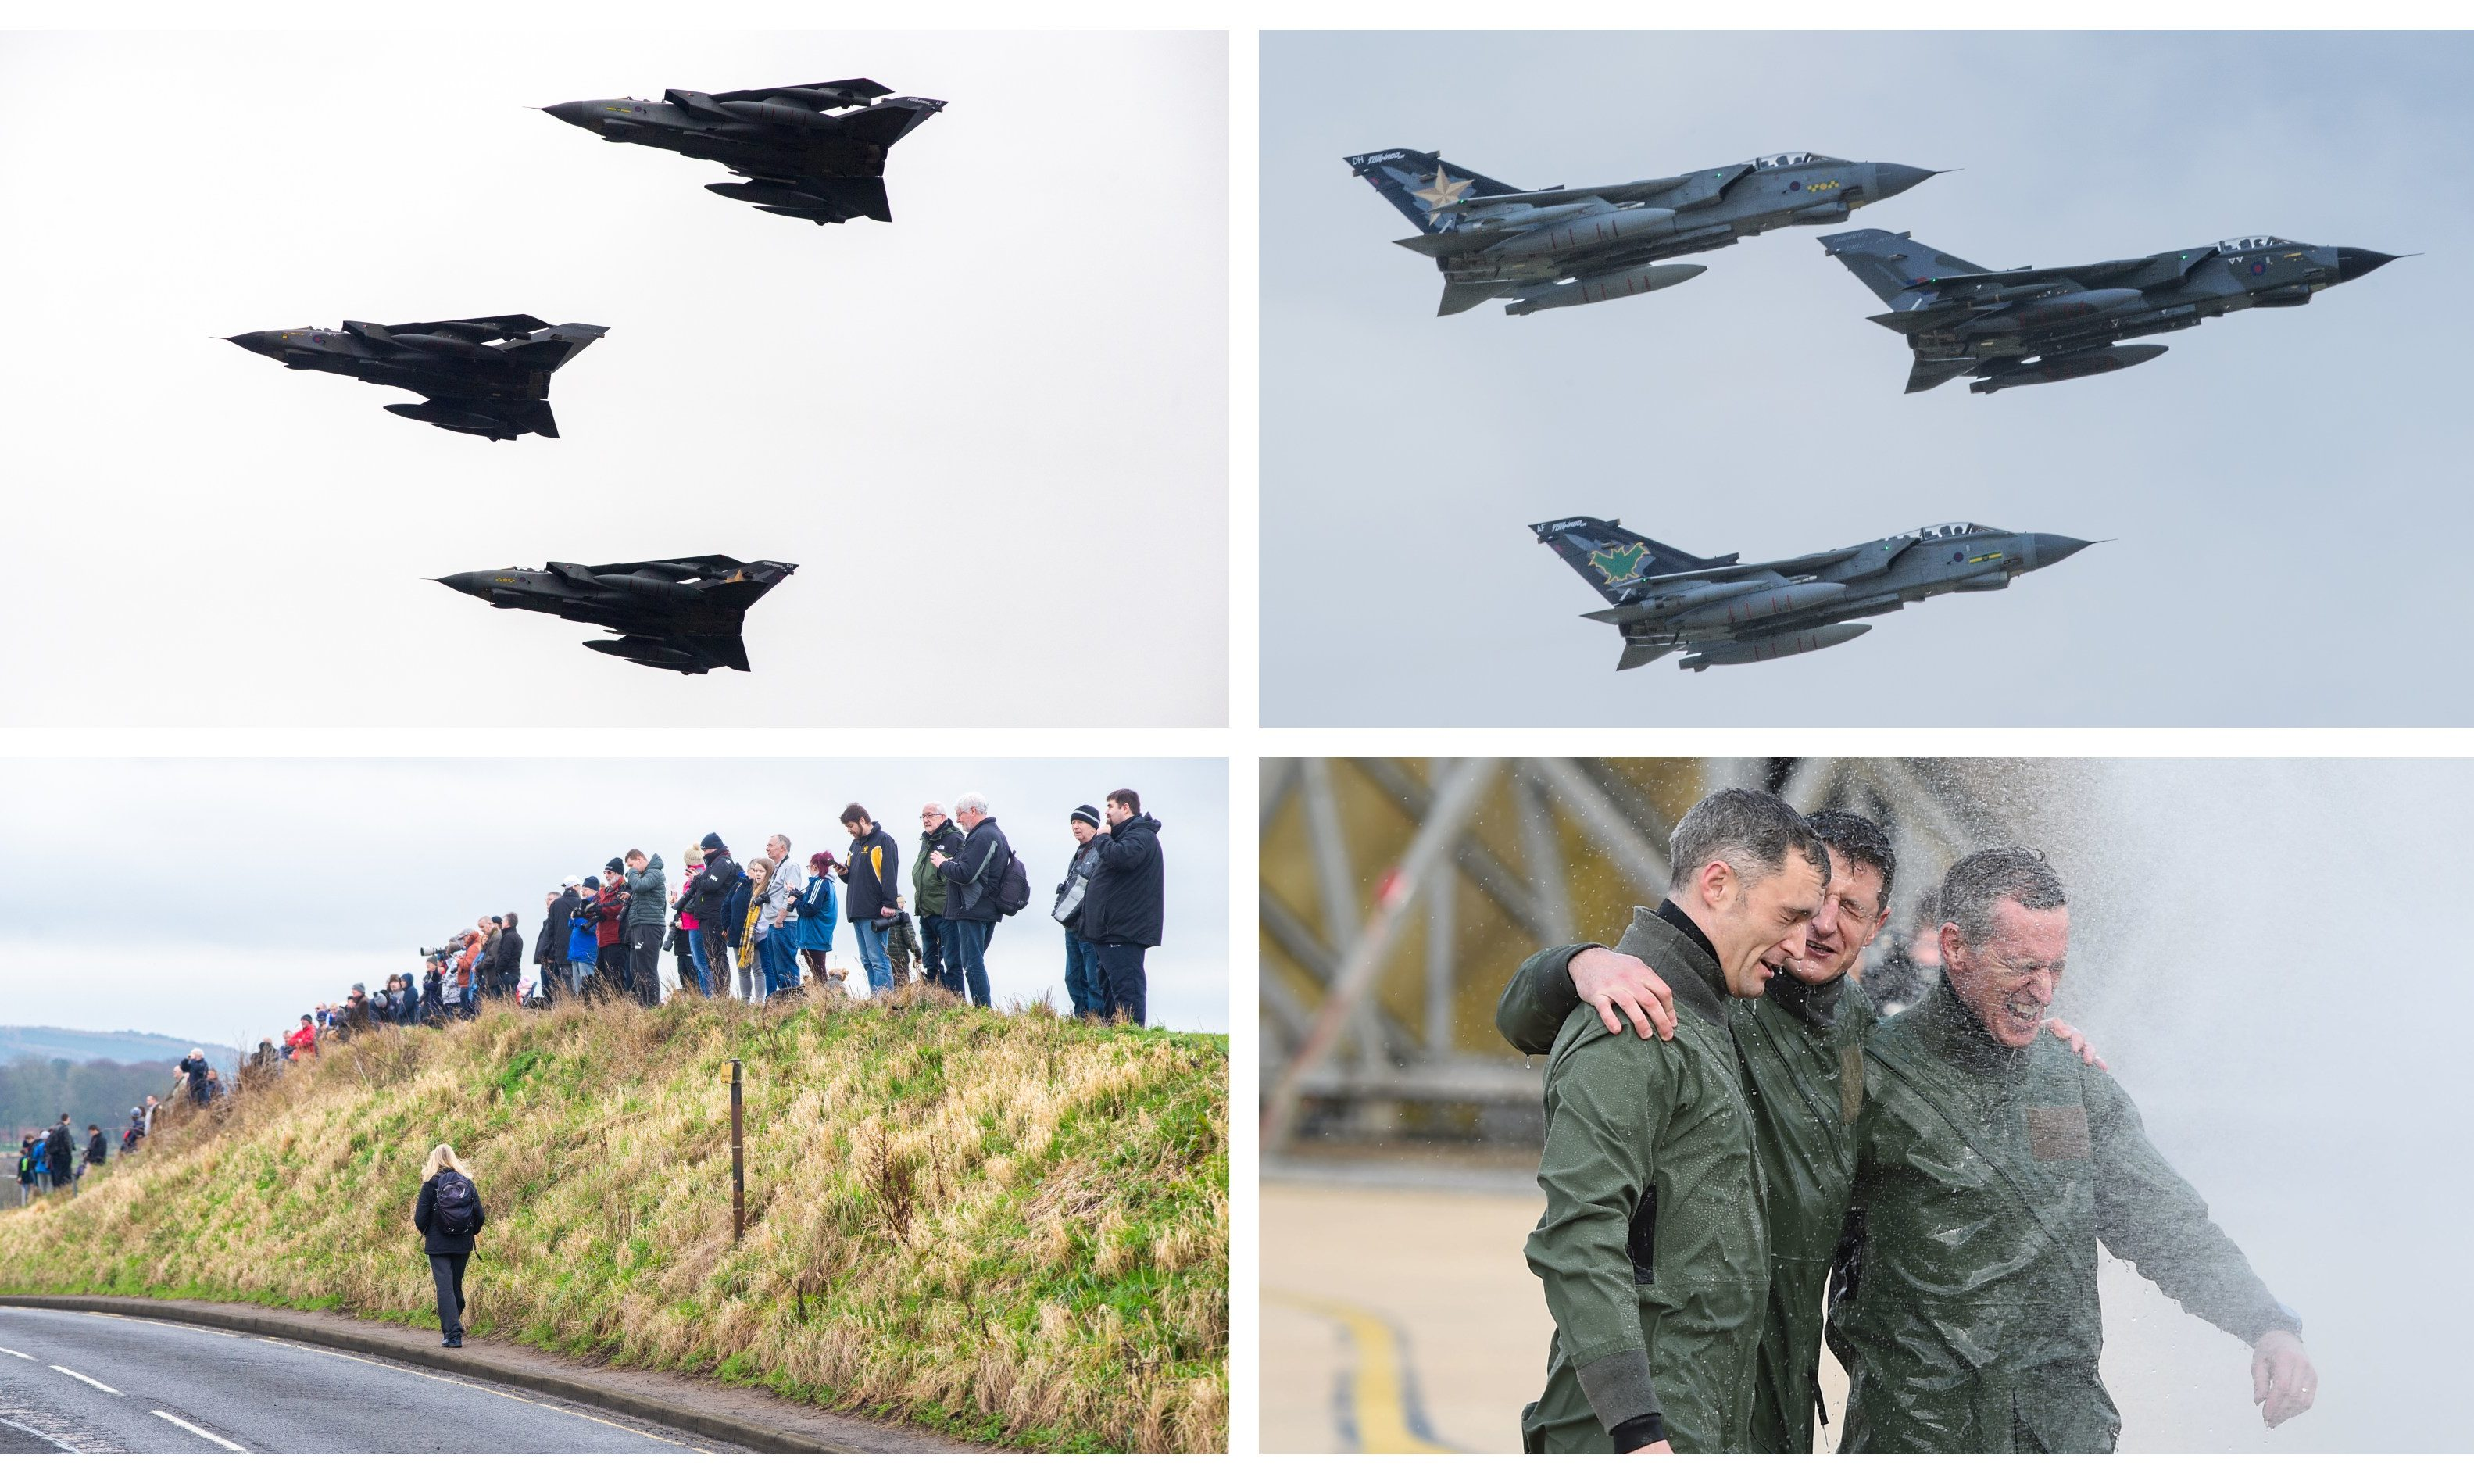 A big crowd gathered as the Tornado final flypast took in Leuchars.